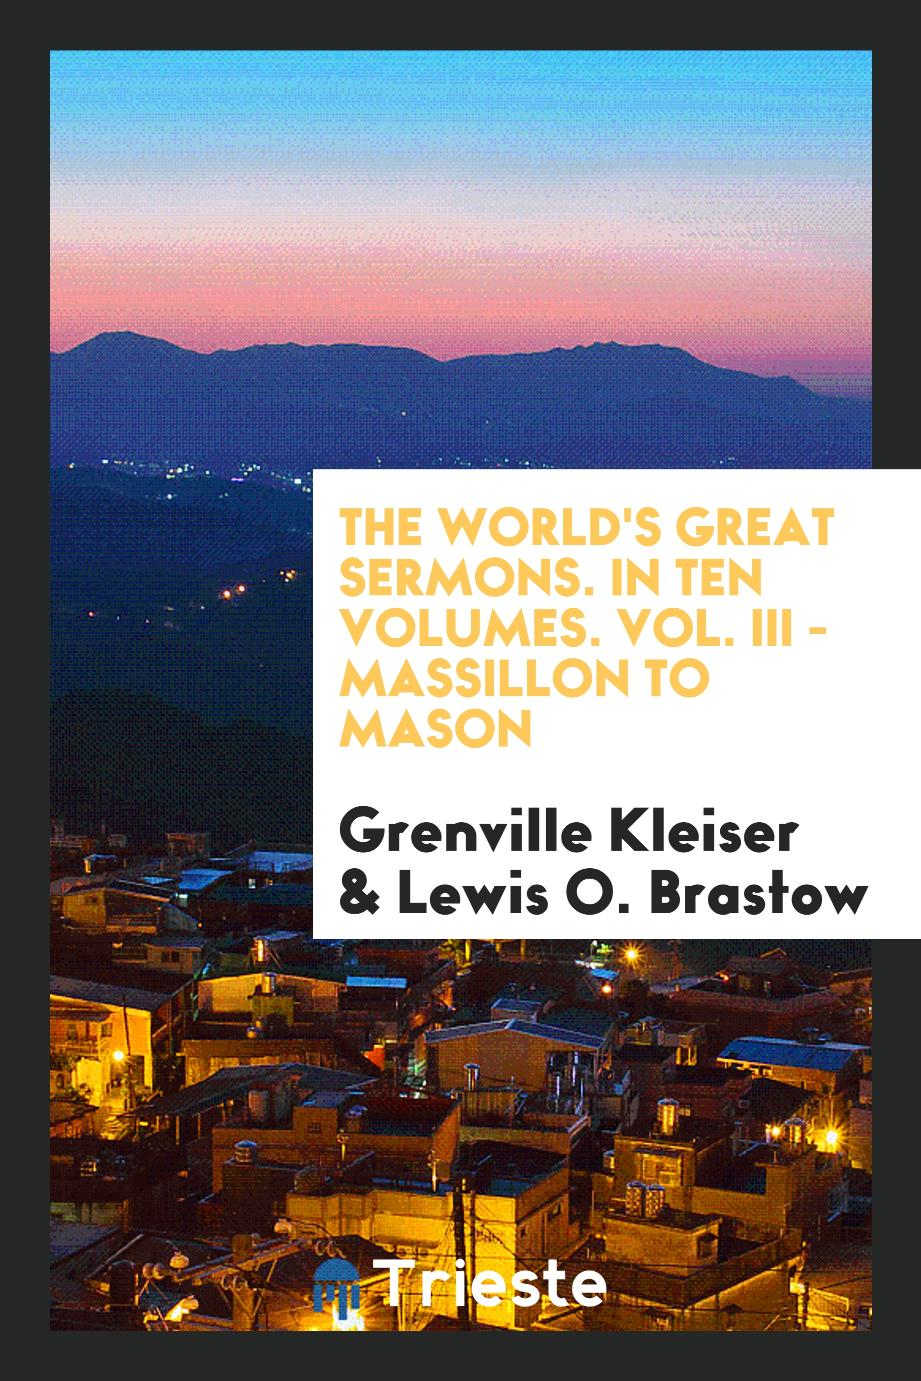 The World's Great Sermons. In Ten Volumes. Vol. III - Massillon to Mason